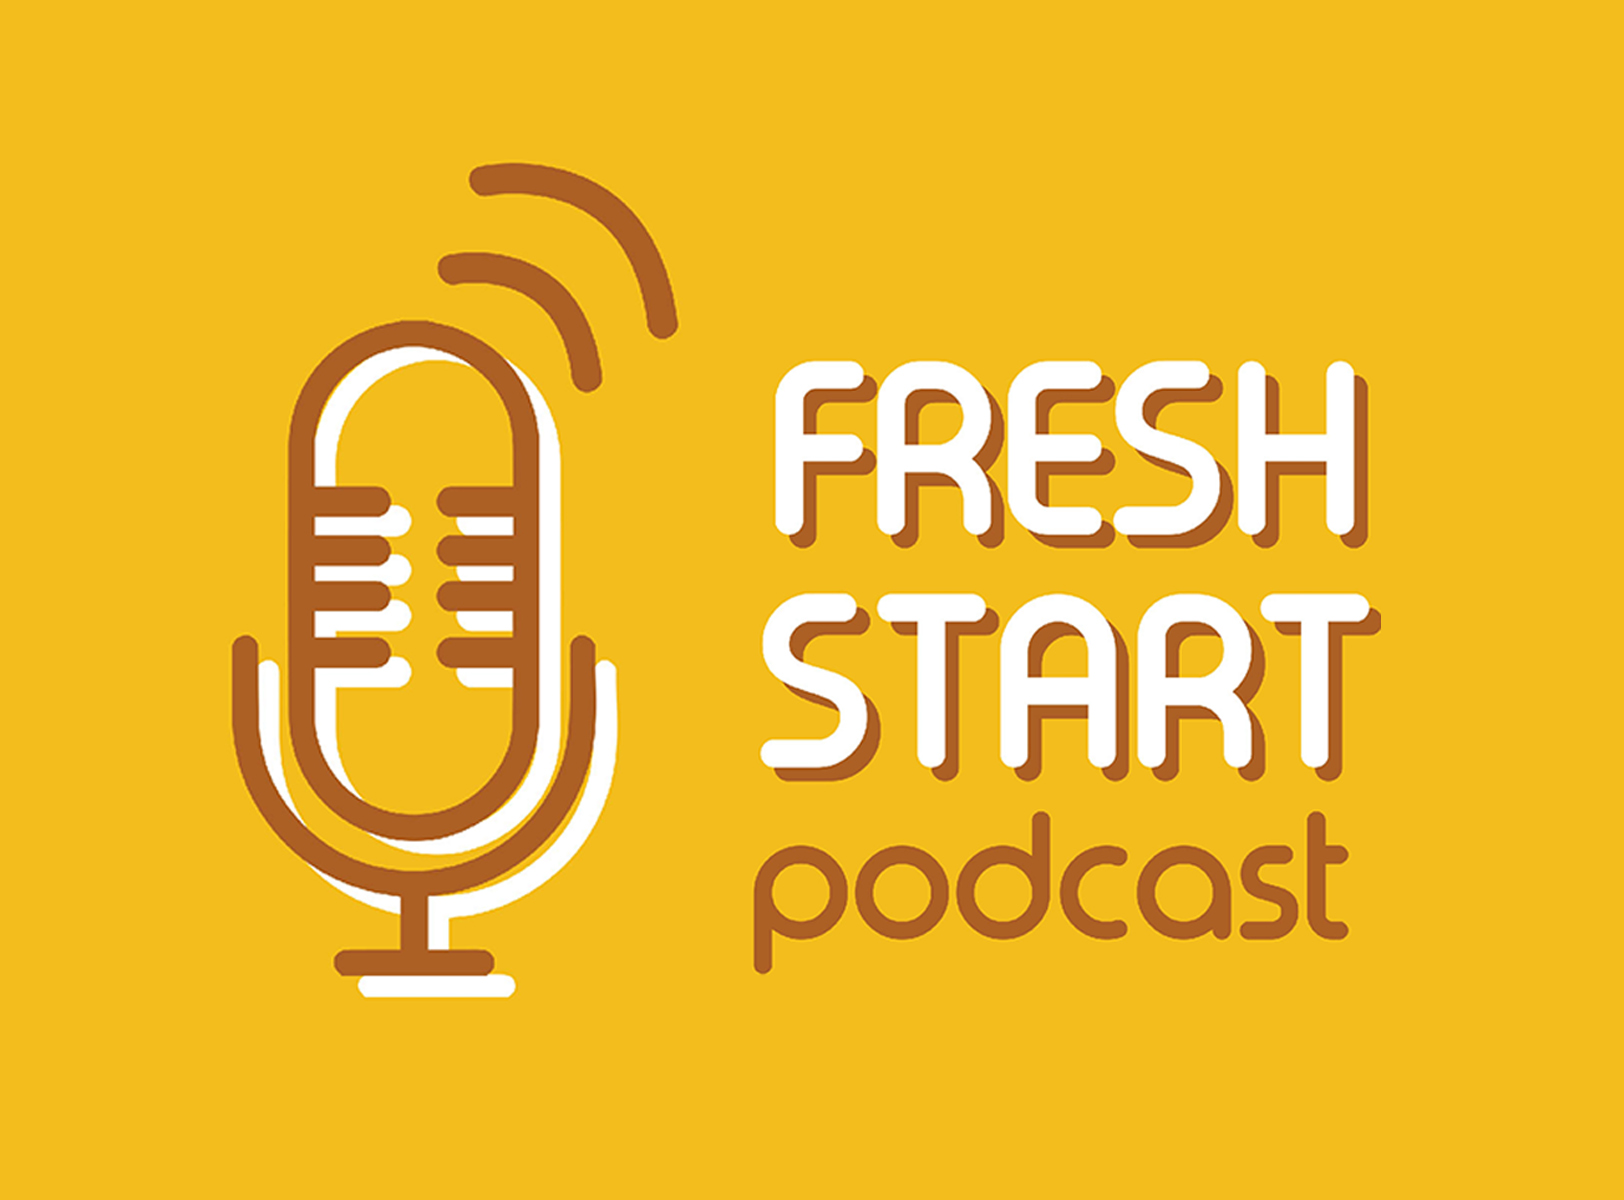 Fresh Start: Podcast News (2/19/2019 Tue.)